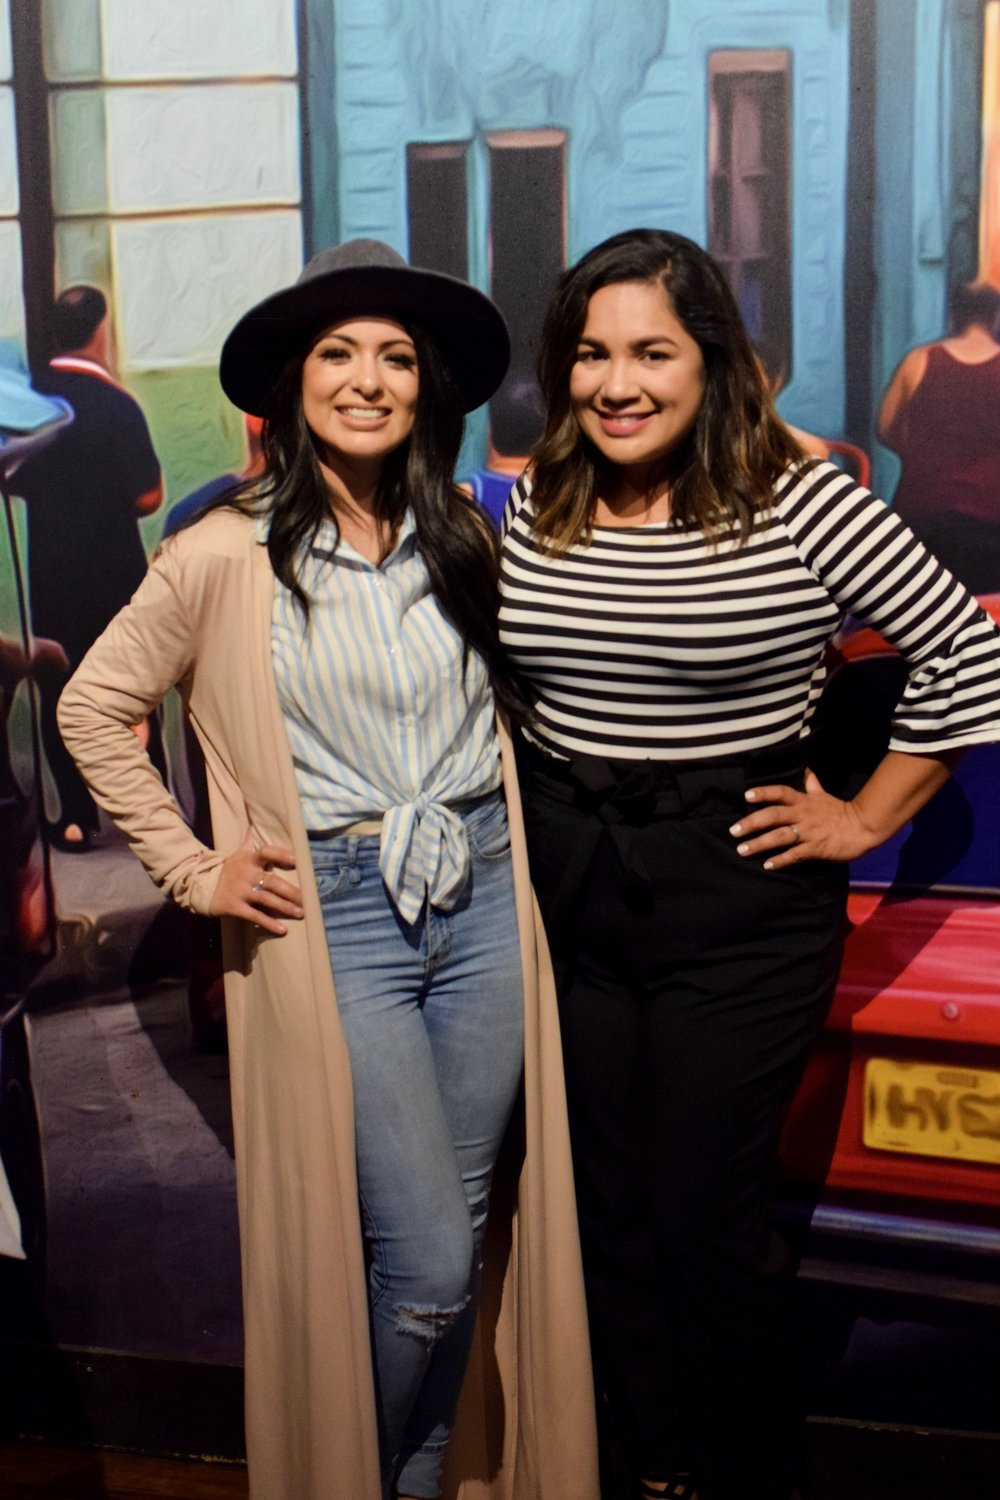 Vannessa Reyes and Georgette Rojas, DFW Latina Bloggers